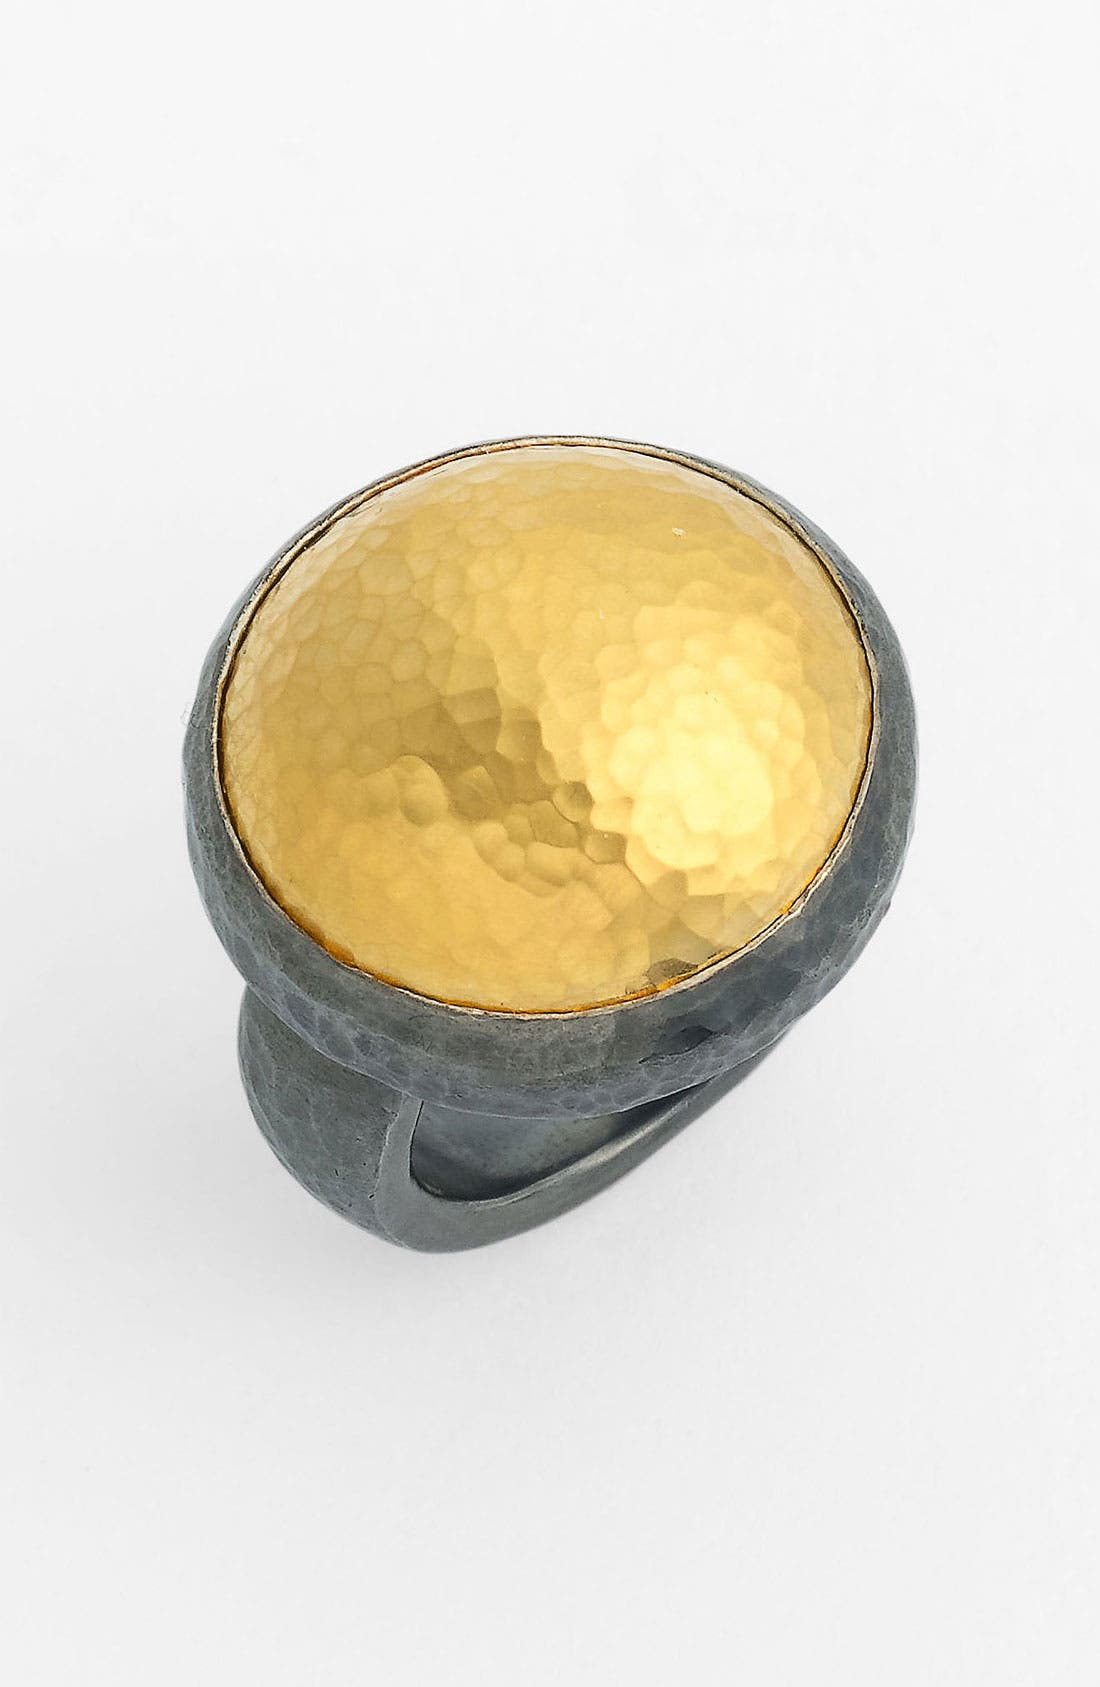 Alternate Image 1 Selected - Gurhan 'Amulet' Dome Ring